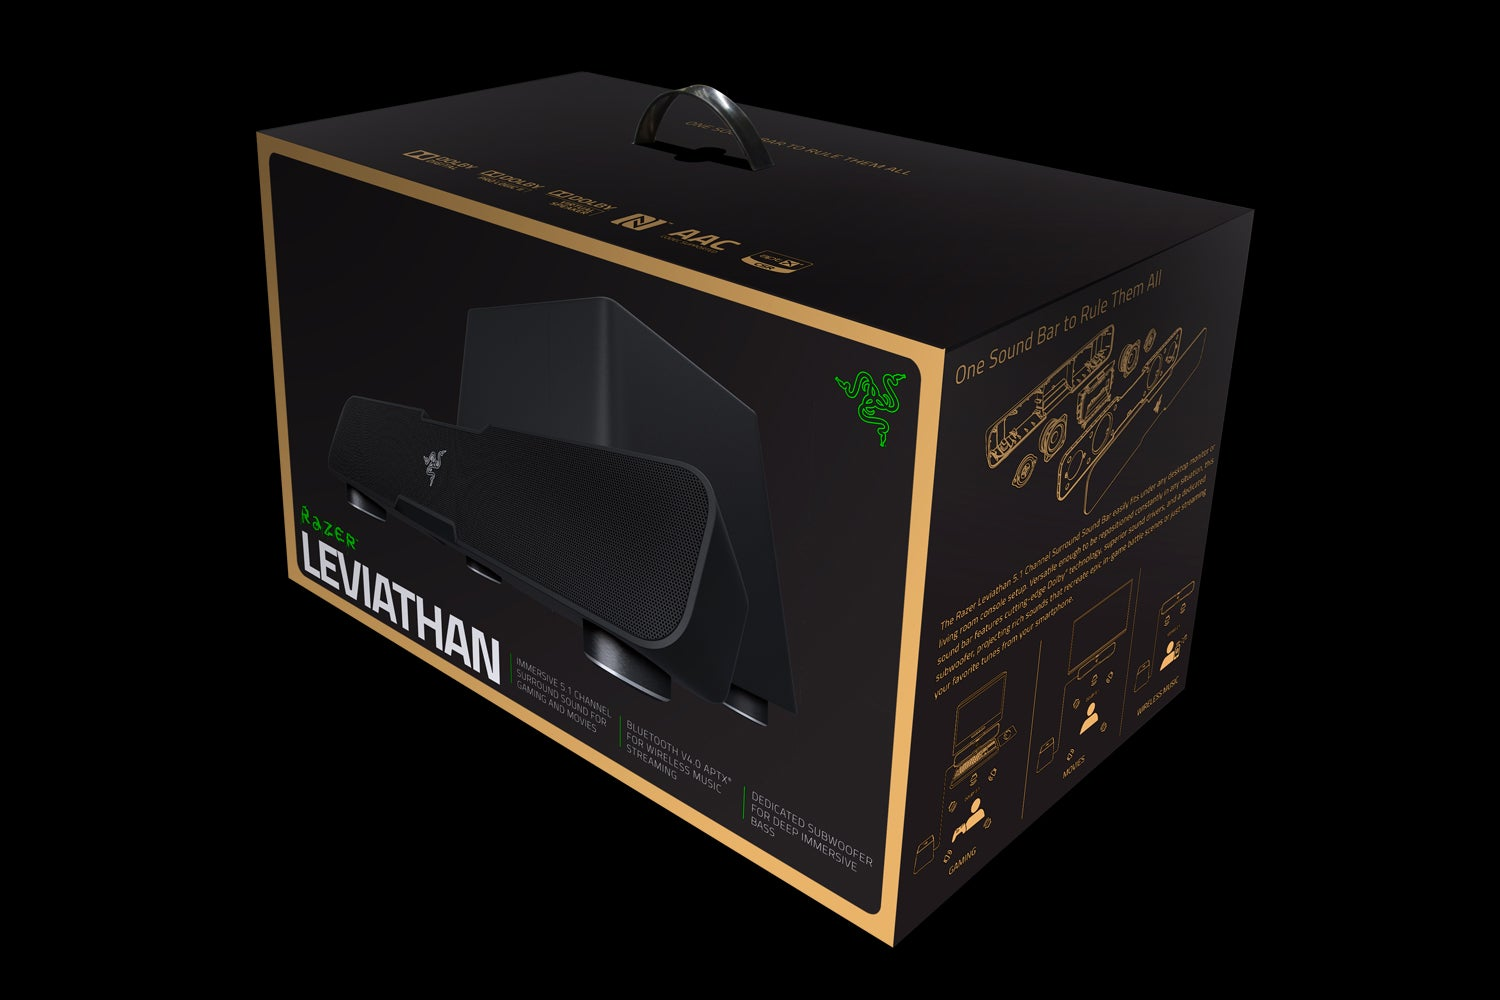 Razer Leviathan 5.1 Channel Surround Sound Bar: The Kotaku Review